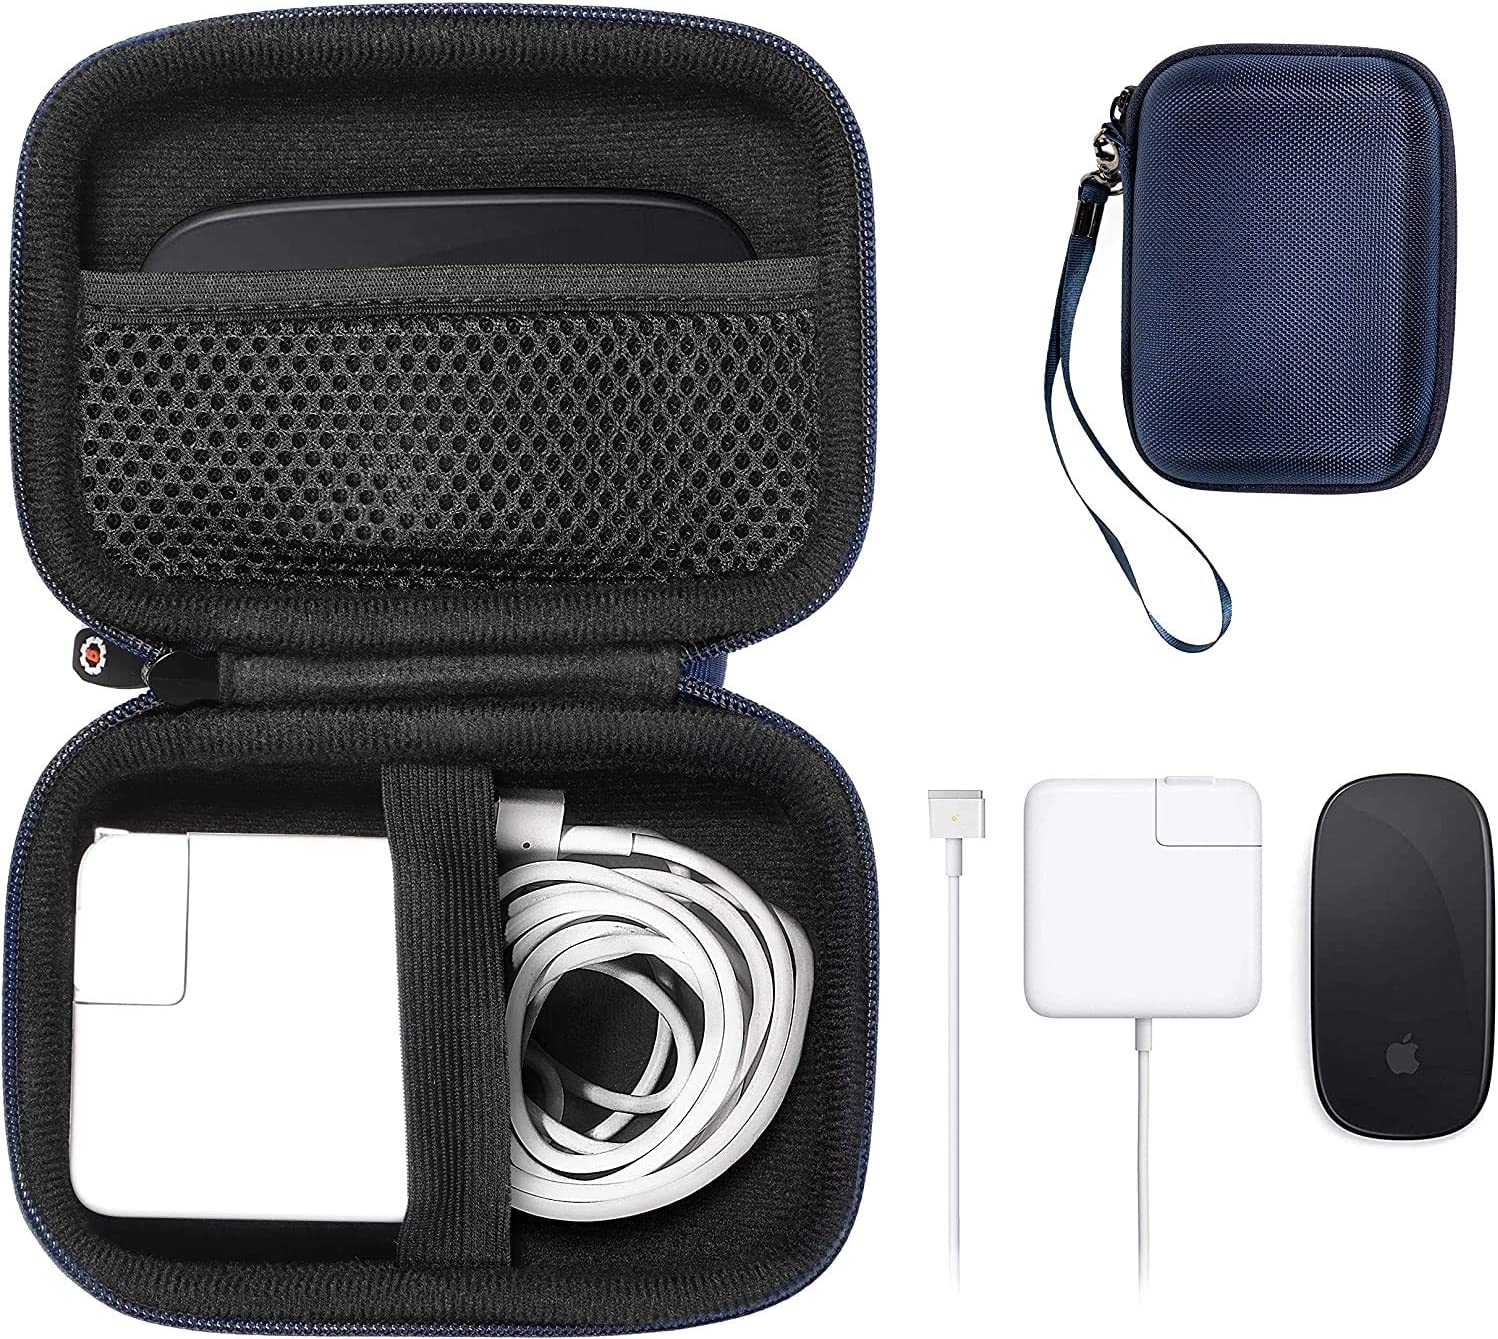 GETGEAR MacBook Accessories case for MacBook Magsafe/Magsafe 2, Magic Mouse 1, 2 and USB Hub, Mini All in one Carrying Solution (Rose Gold) (Blue)